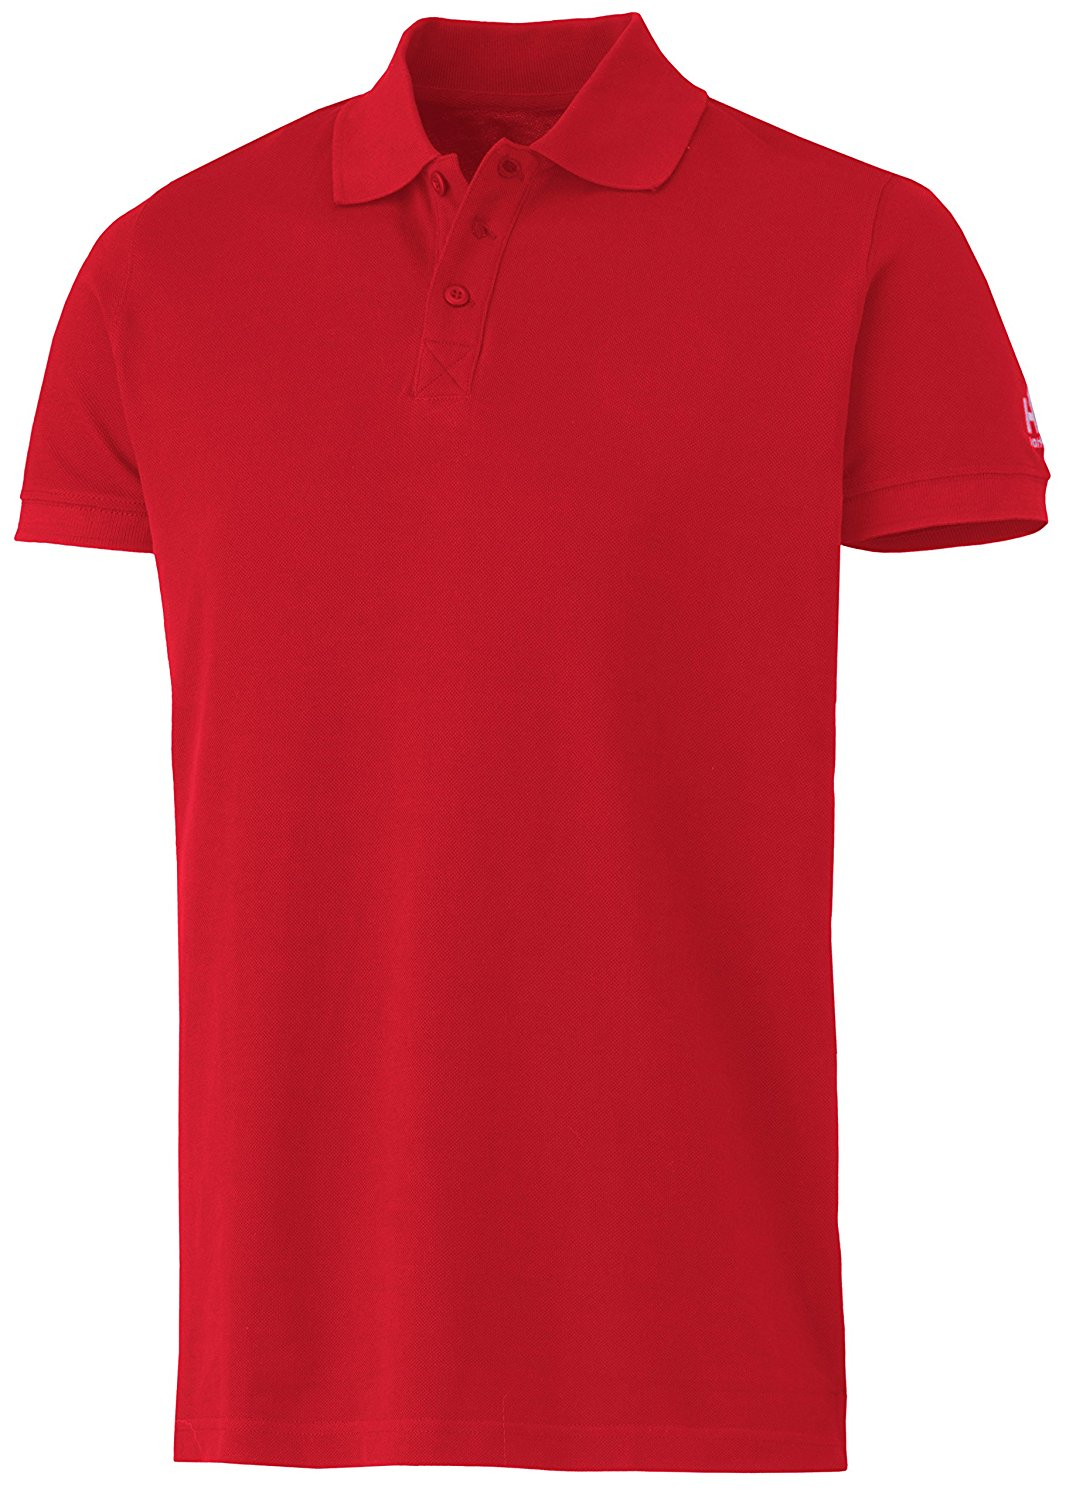 Get Quotations · Helly Hansen 79182 130-2XL Salford Pique Poloshirt,  XX-Large, Red 47cfe98dcf